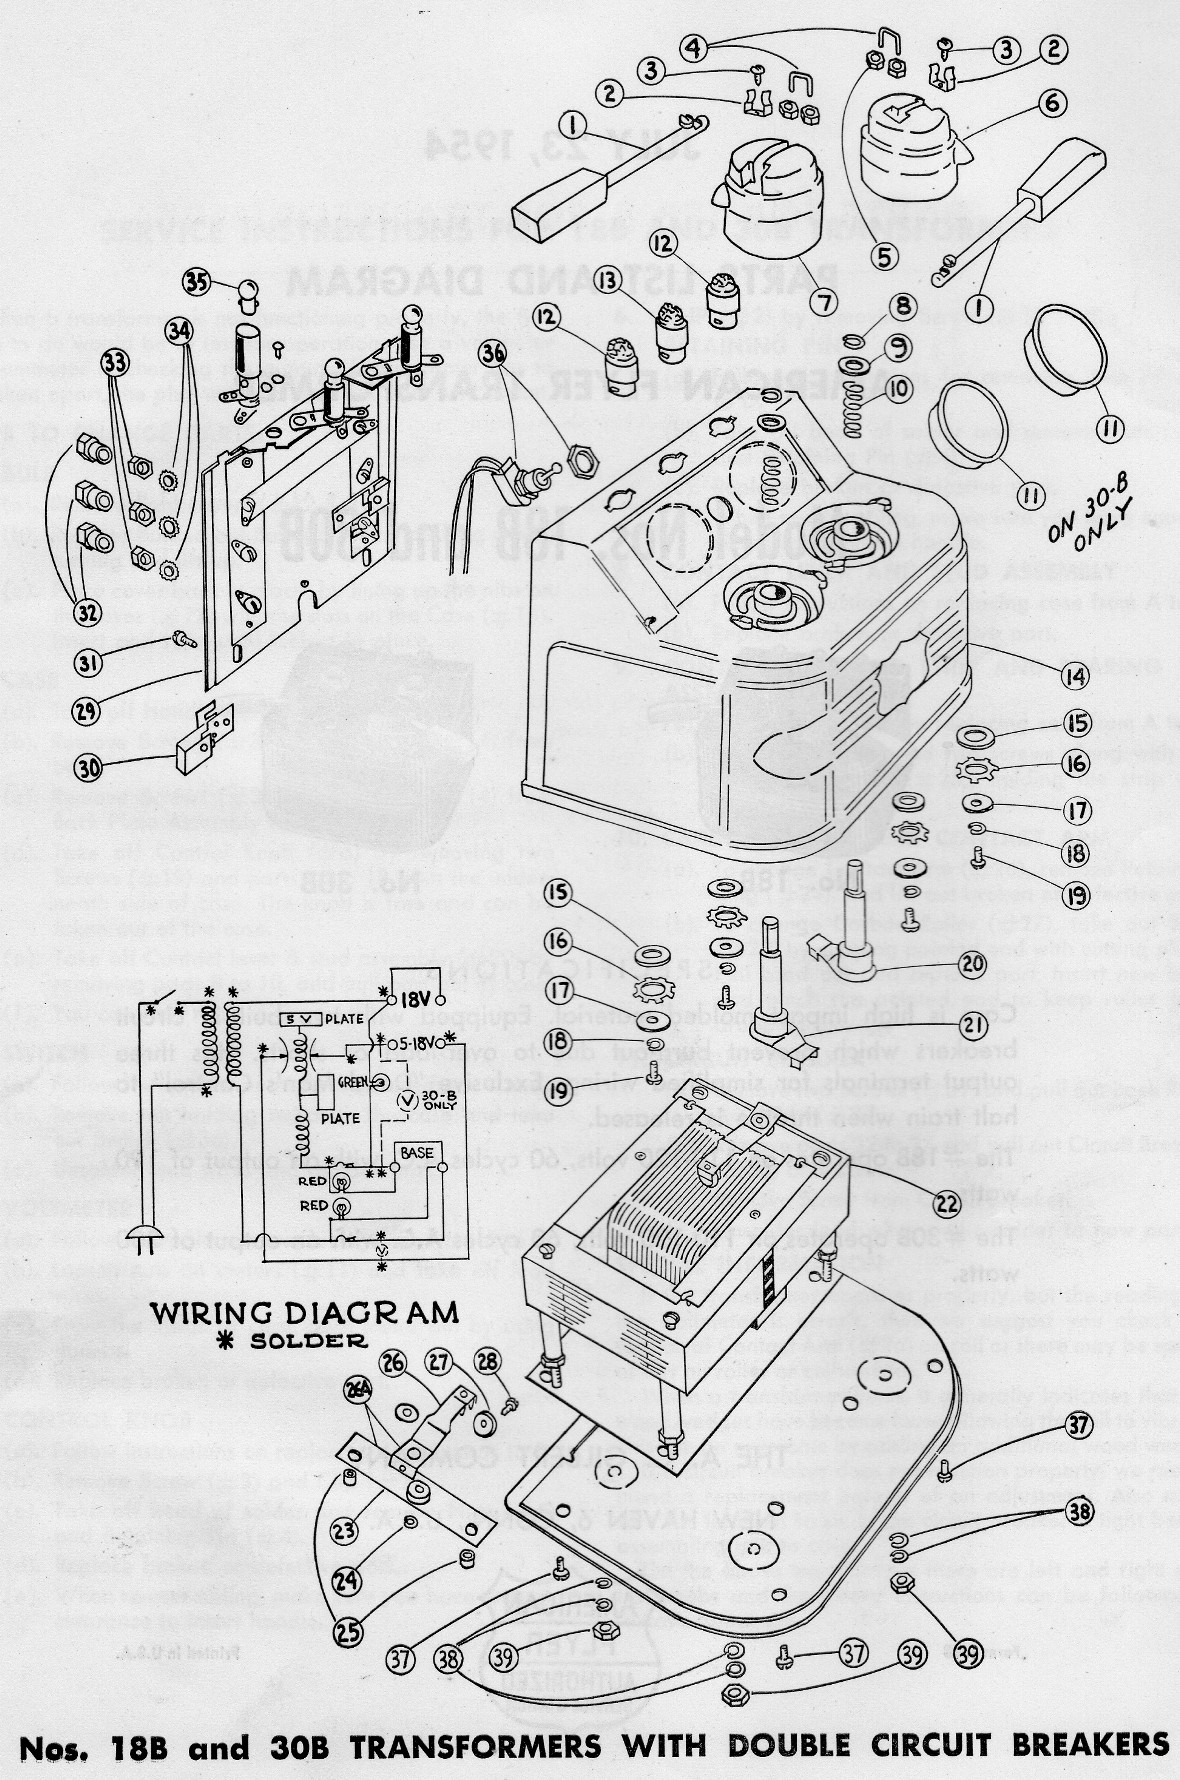 Dual Voltage Transformer Wiring Diagram. Engine. Wiring